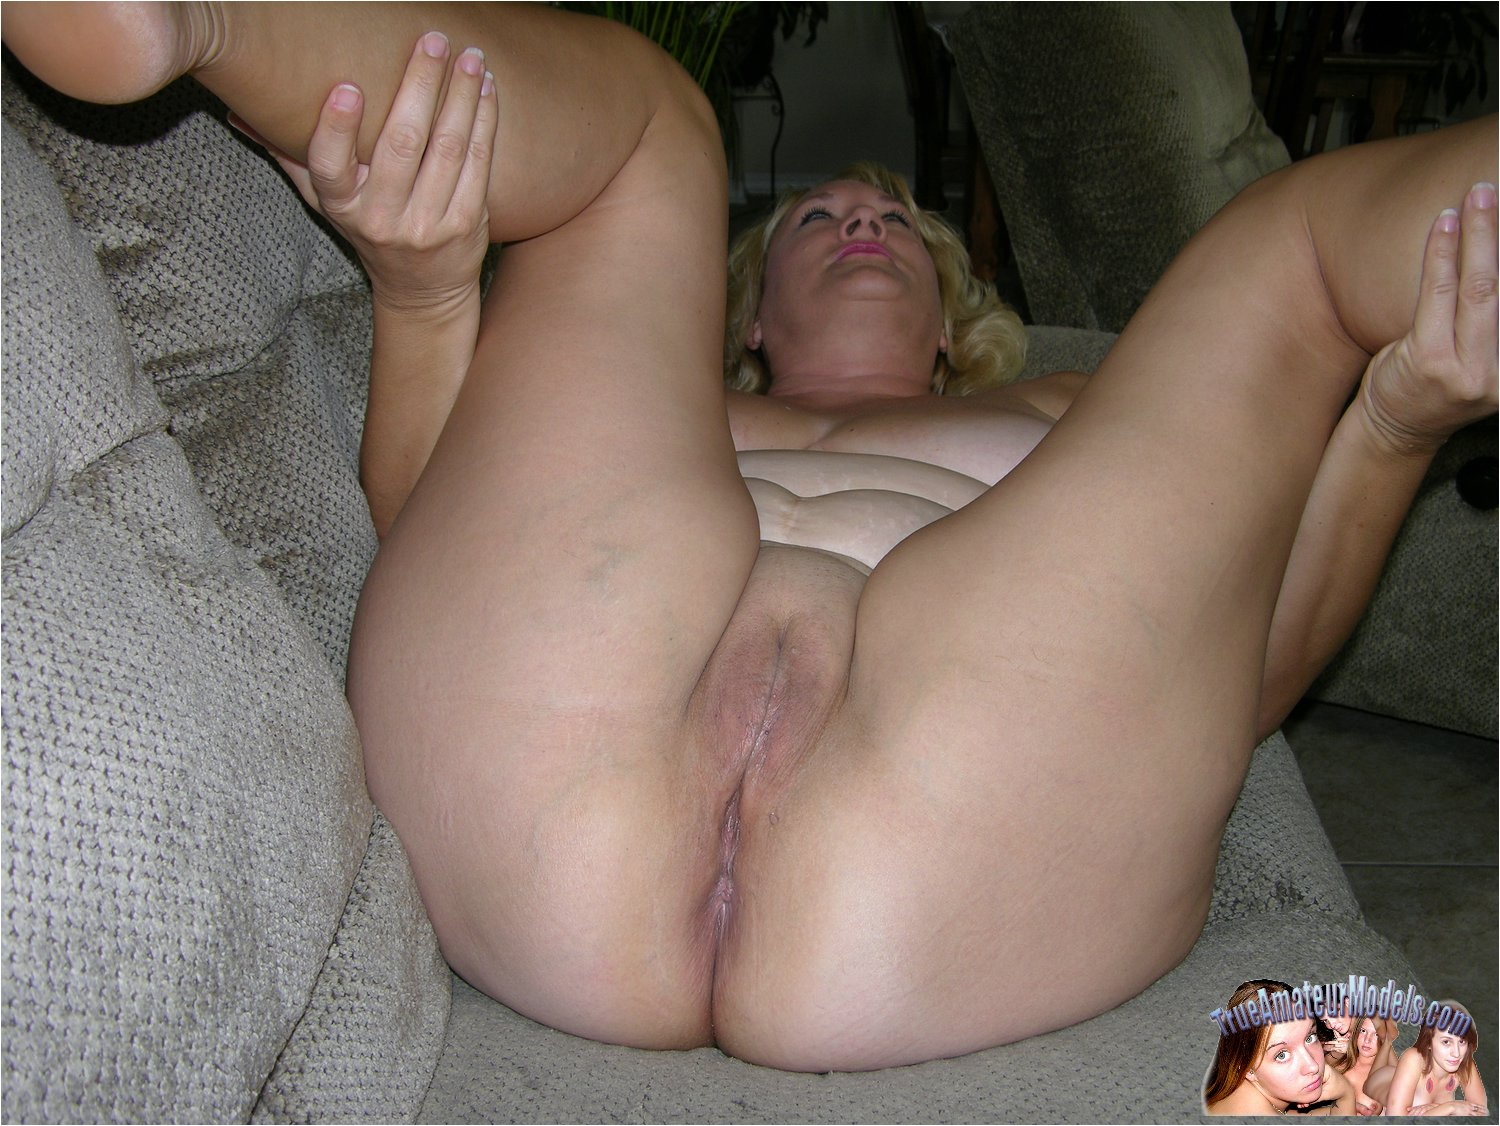 Bbw german girl